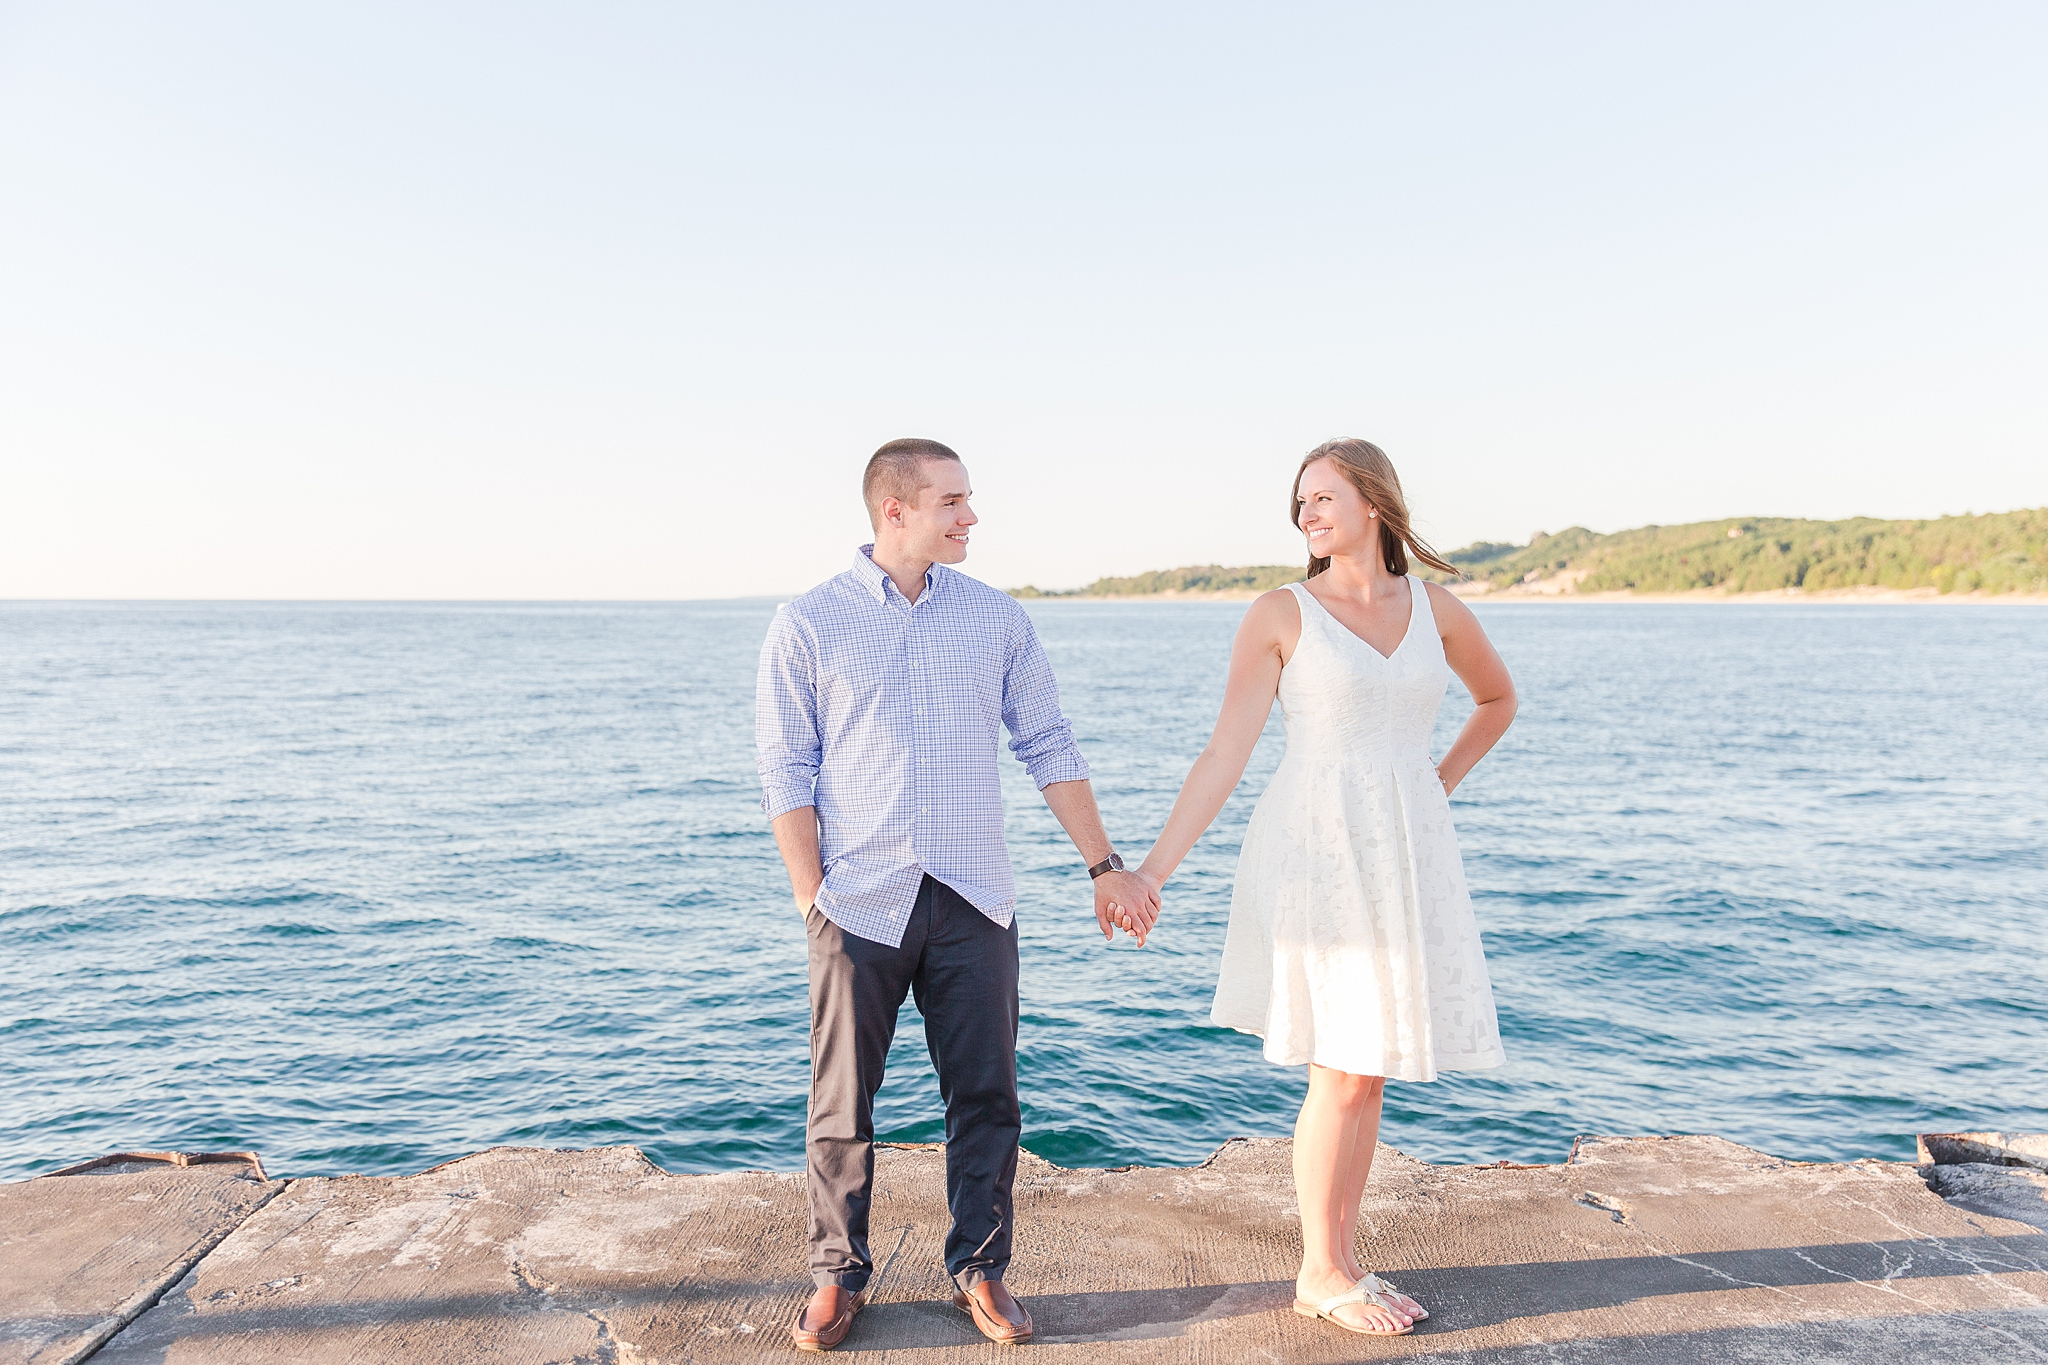 waterfront-lighthouse-engagement-photography-in-charlevoix-mi-by-courtney-carolyn-photography_0004.jpg